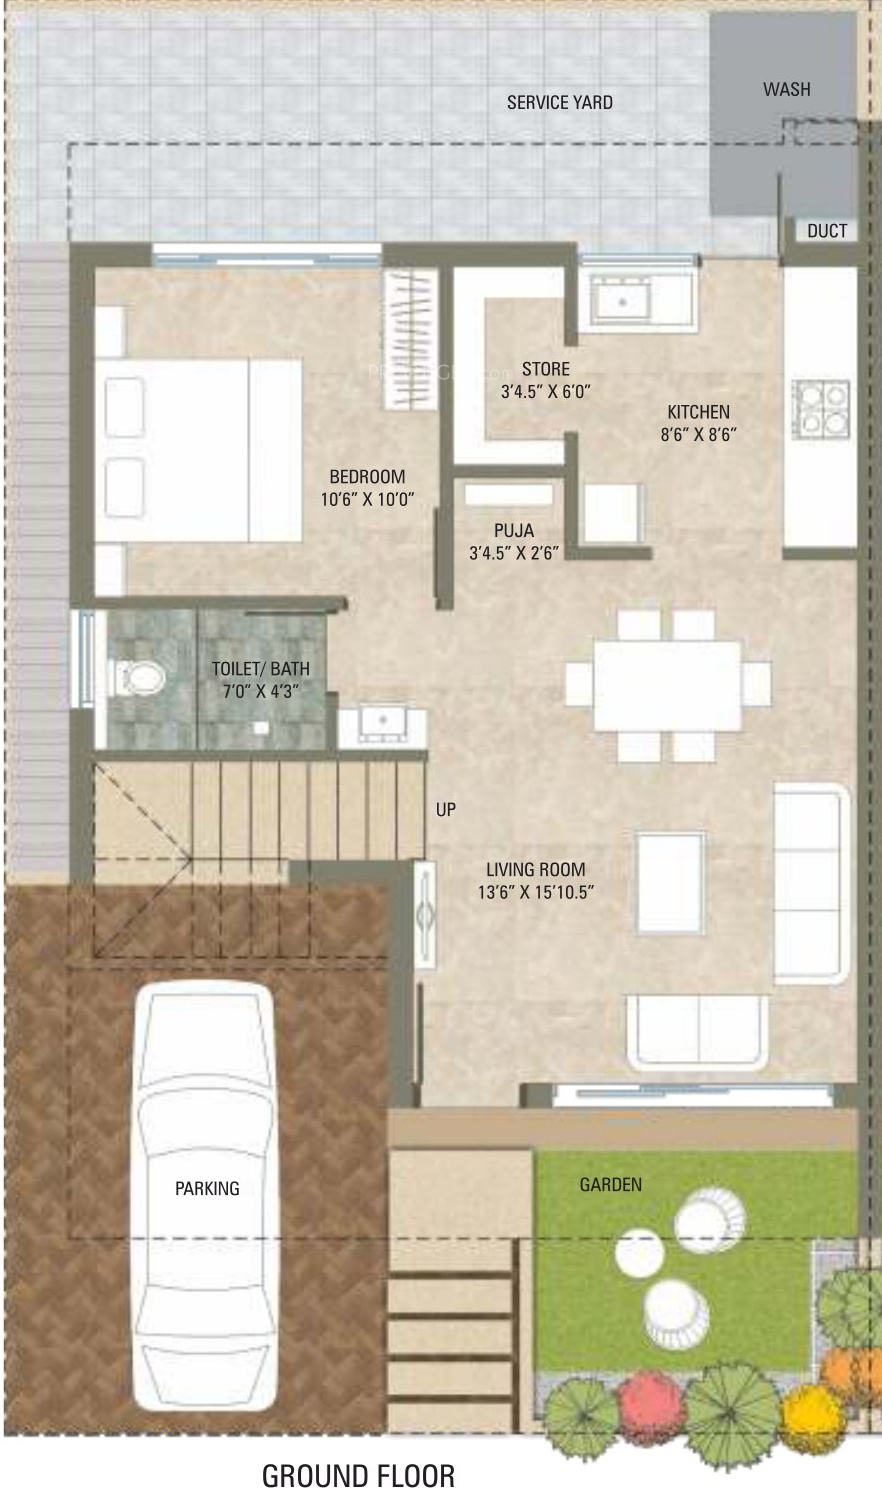 Interesting Last Man Standing House Floor Plan Gallery   Best ...  Interesting Last Man Standing House Floor Plan Gallery Best Part 85